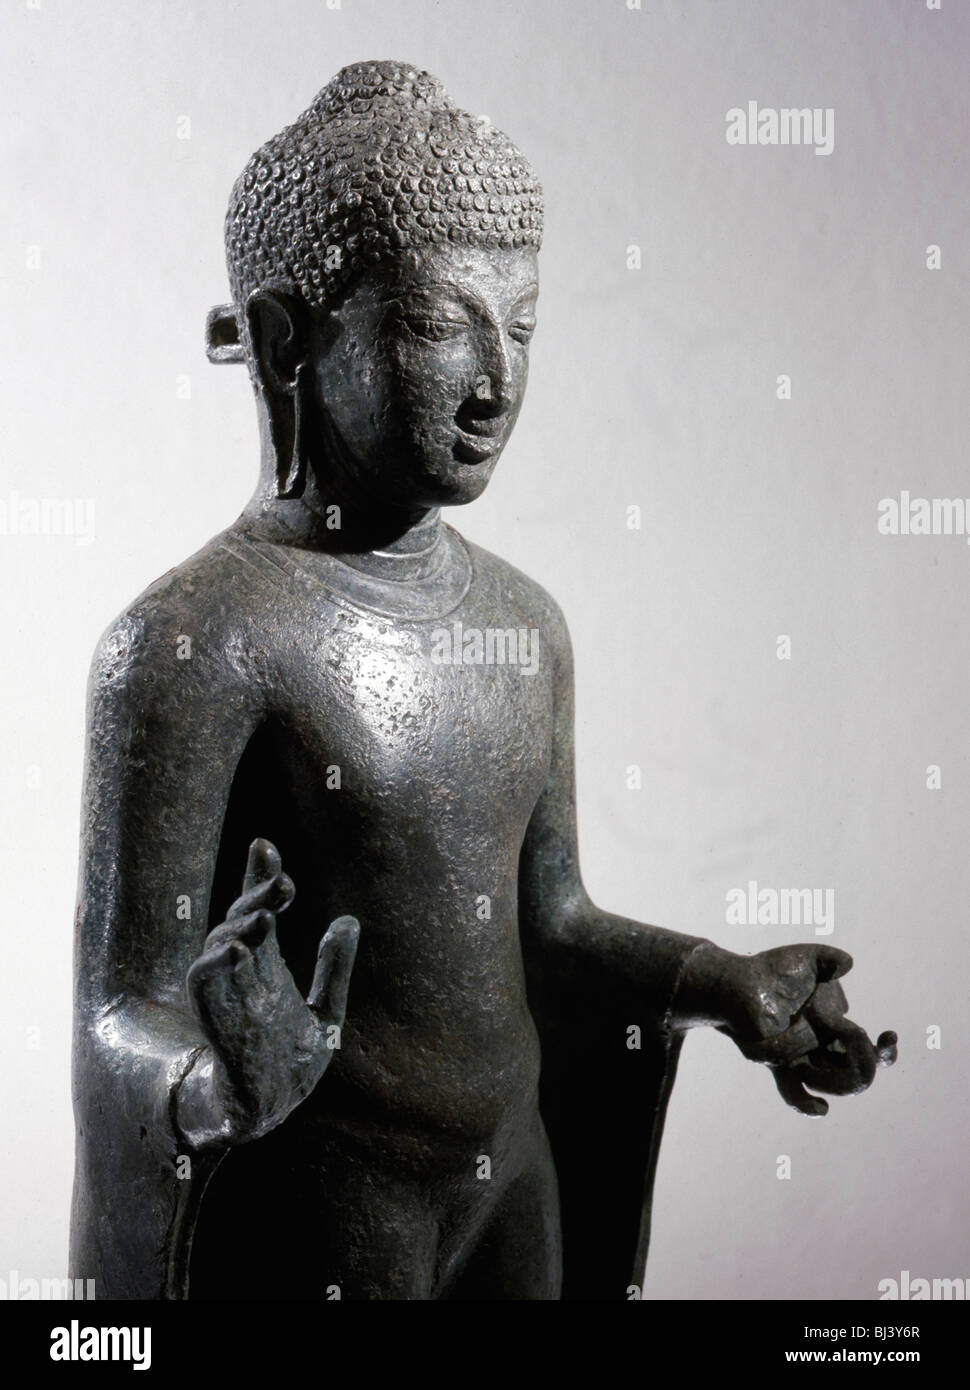 Bronze statue of Buddha, from Java or Sumatra, Indonesia, c8th-9th century. Artist: Werner Forman - Stock Image